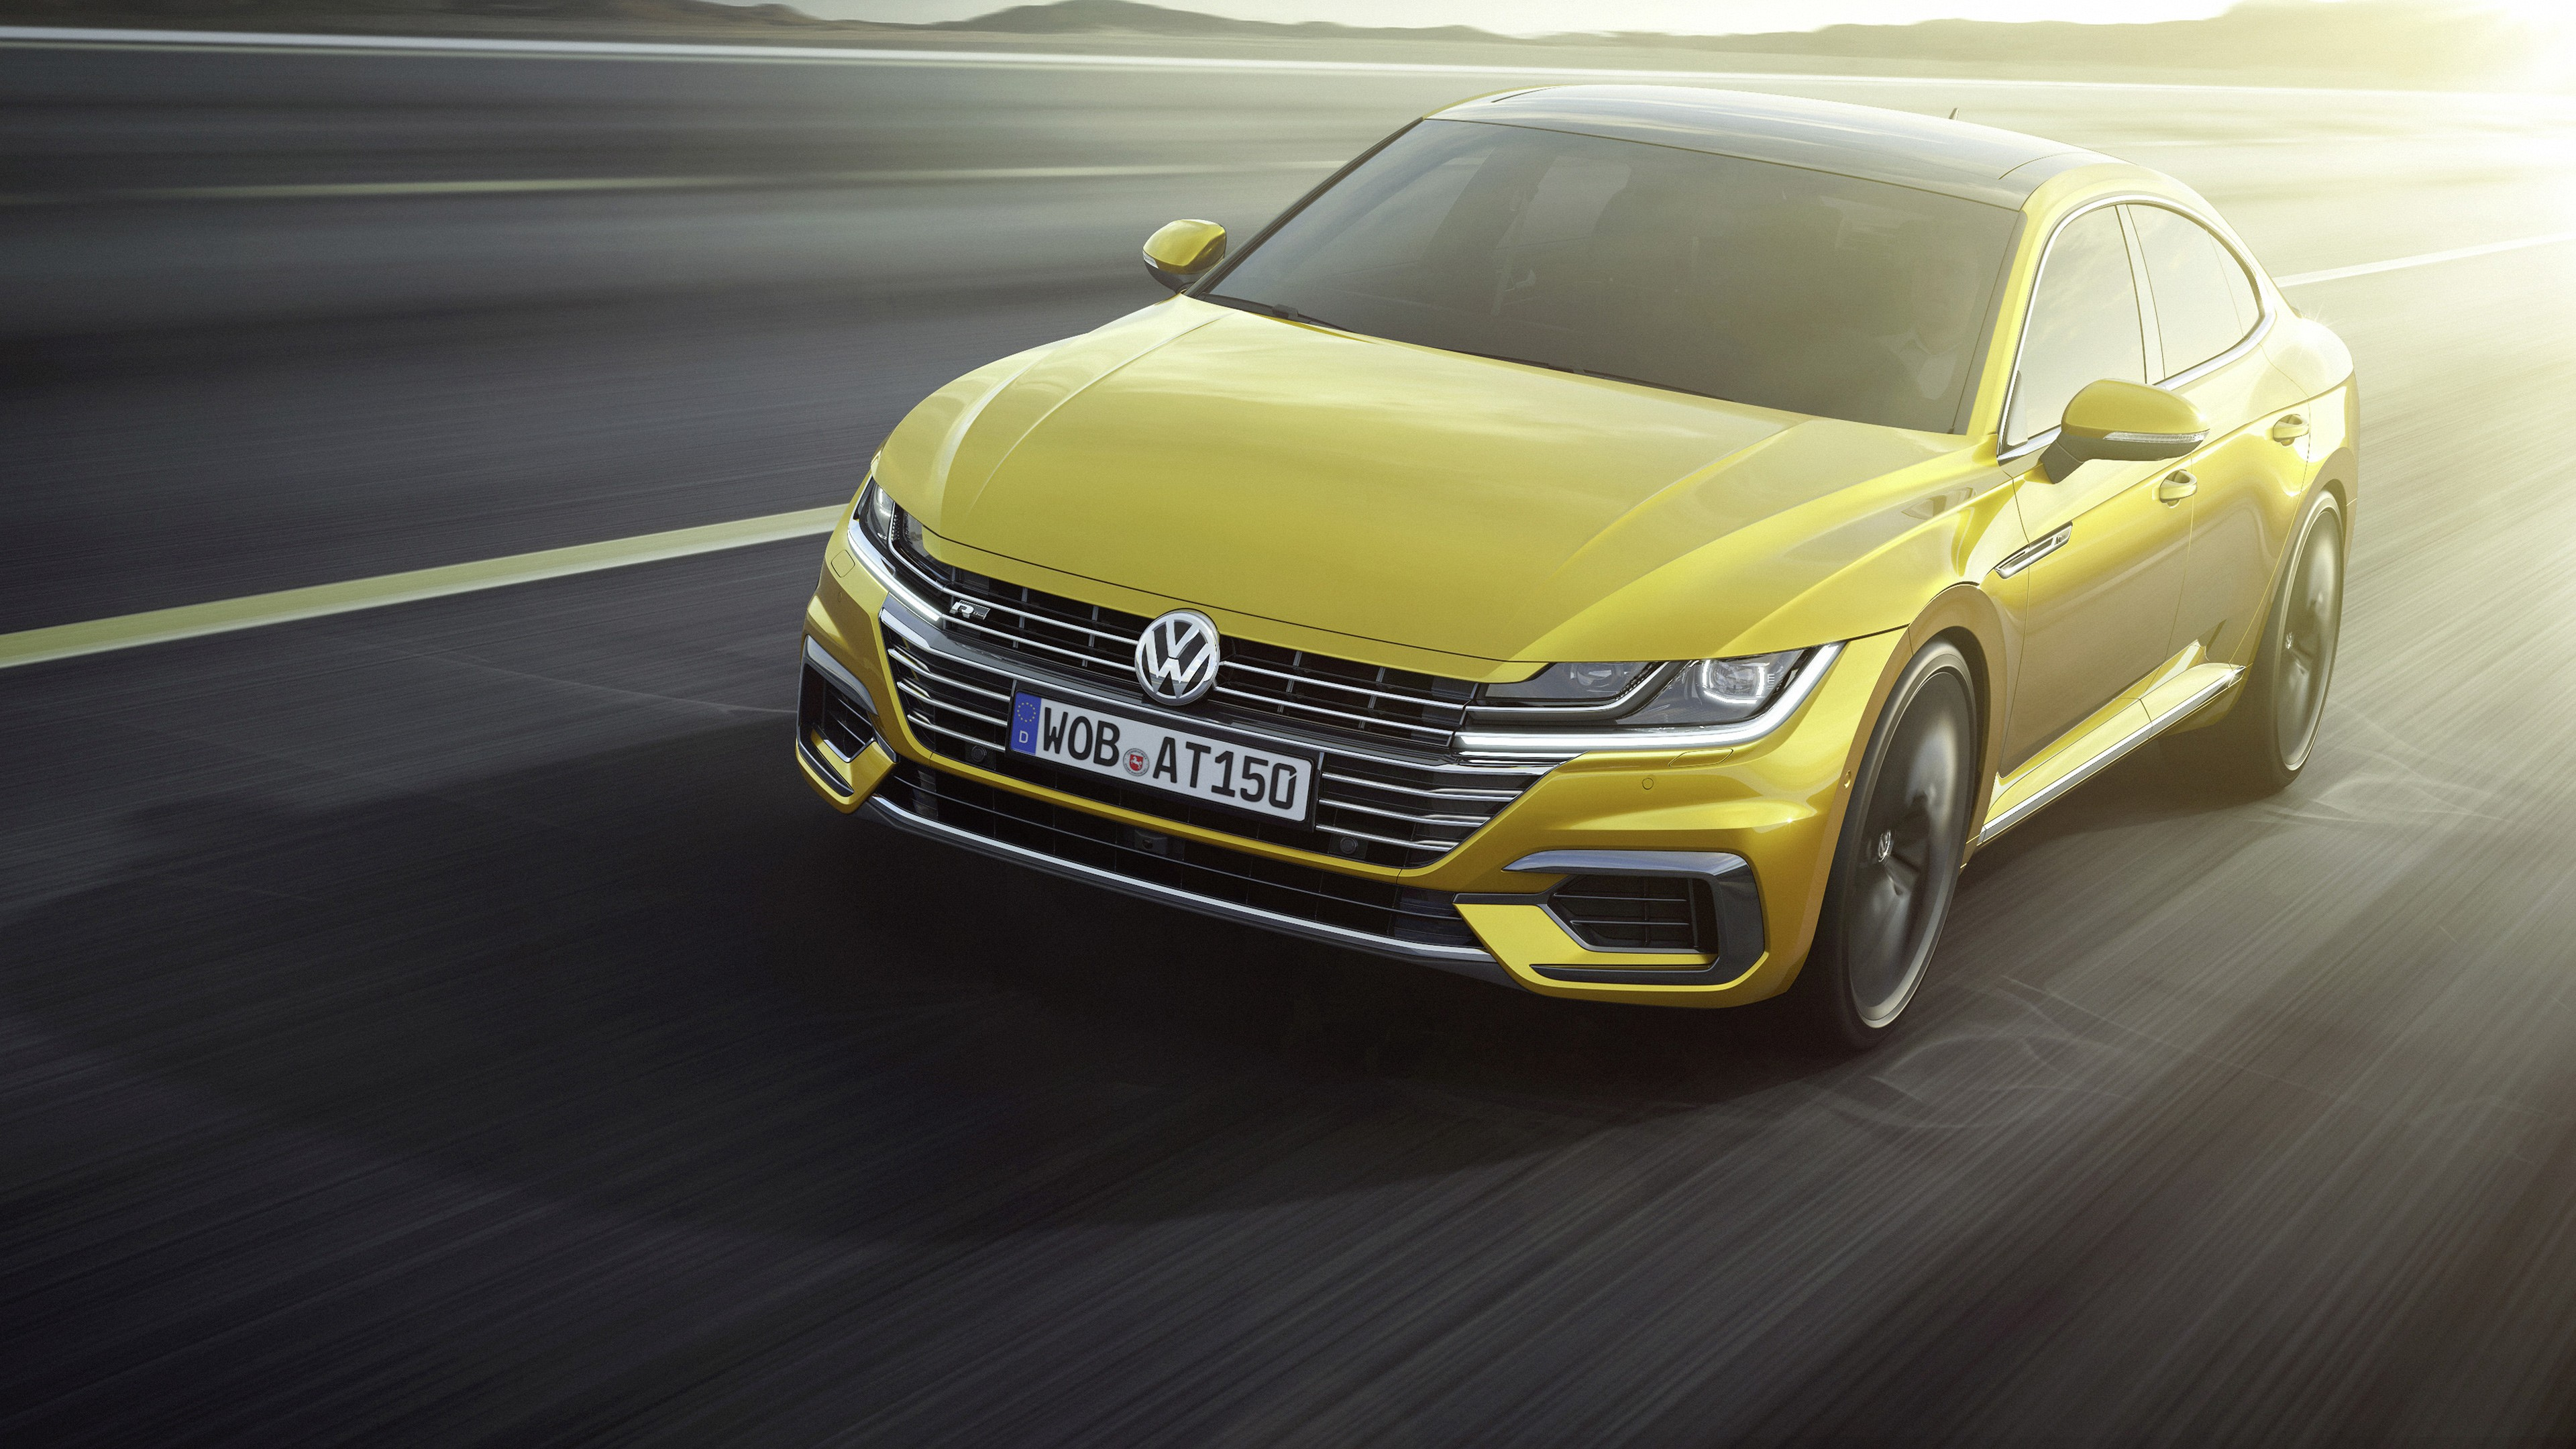 Volkswagen Arteon exterior photo